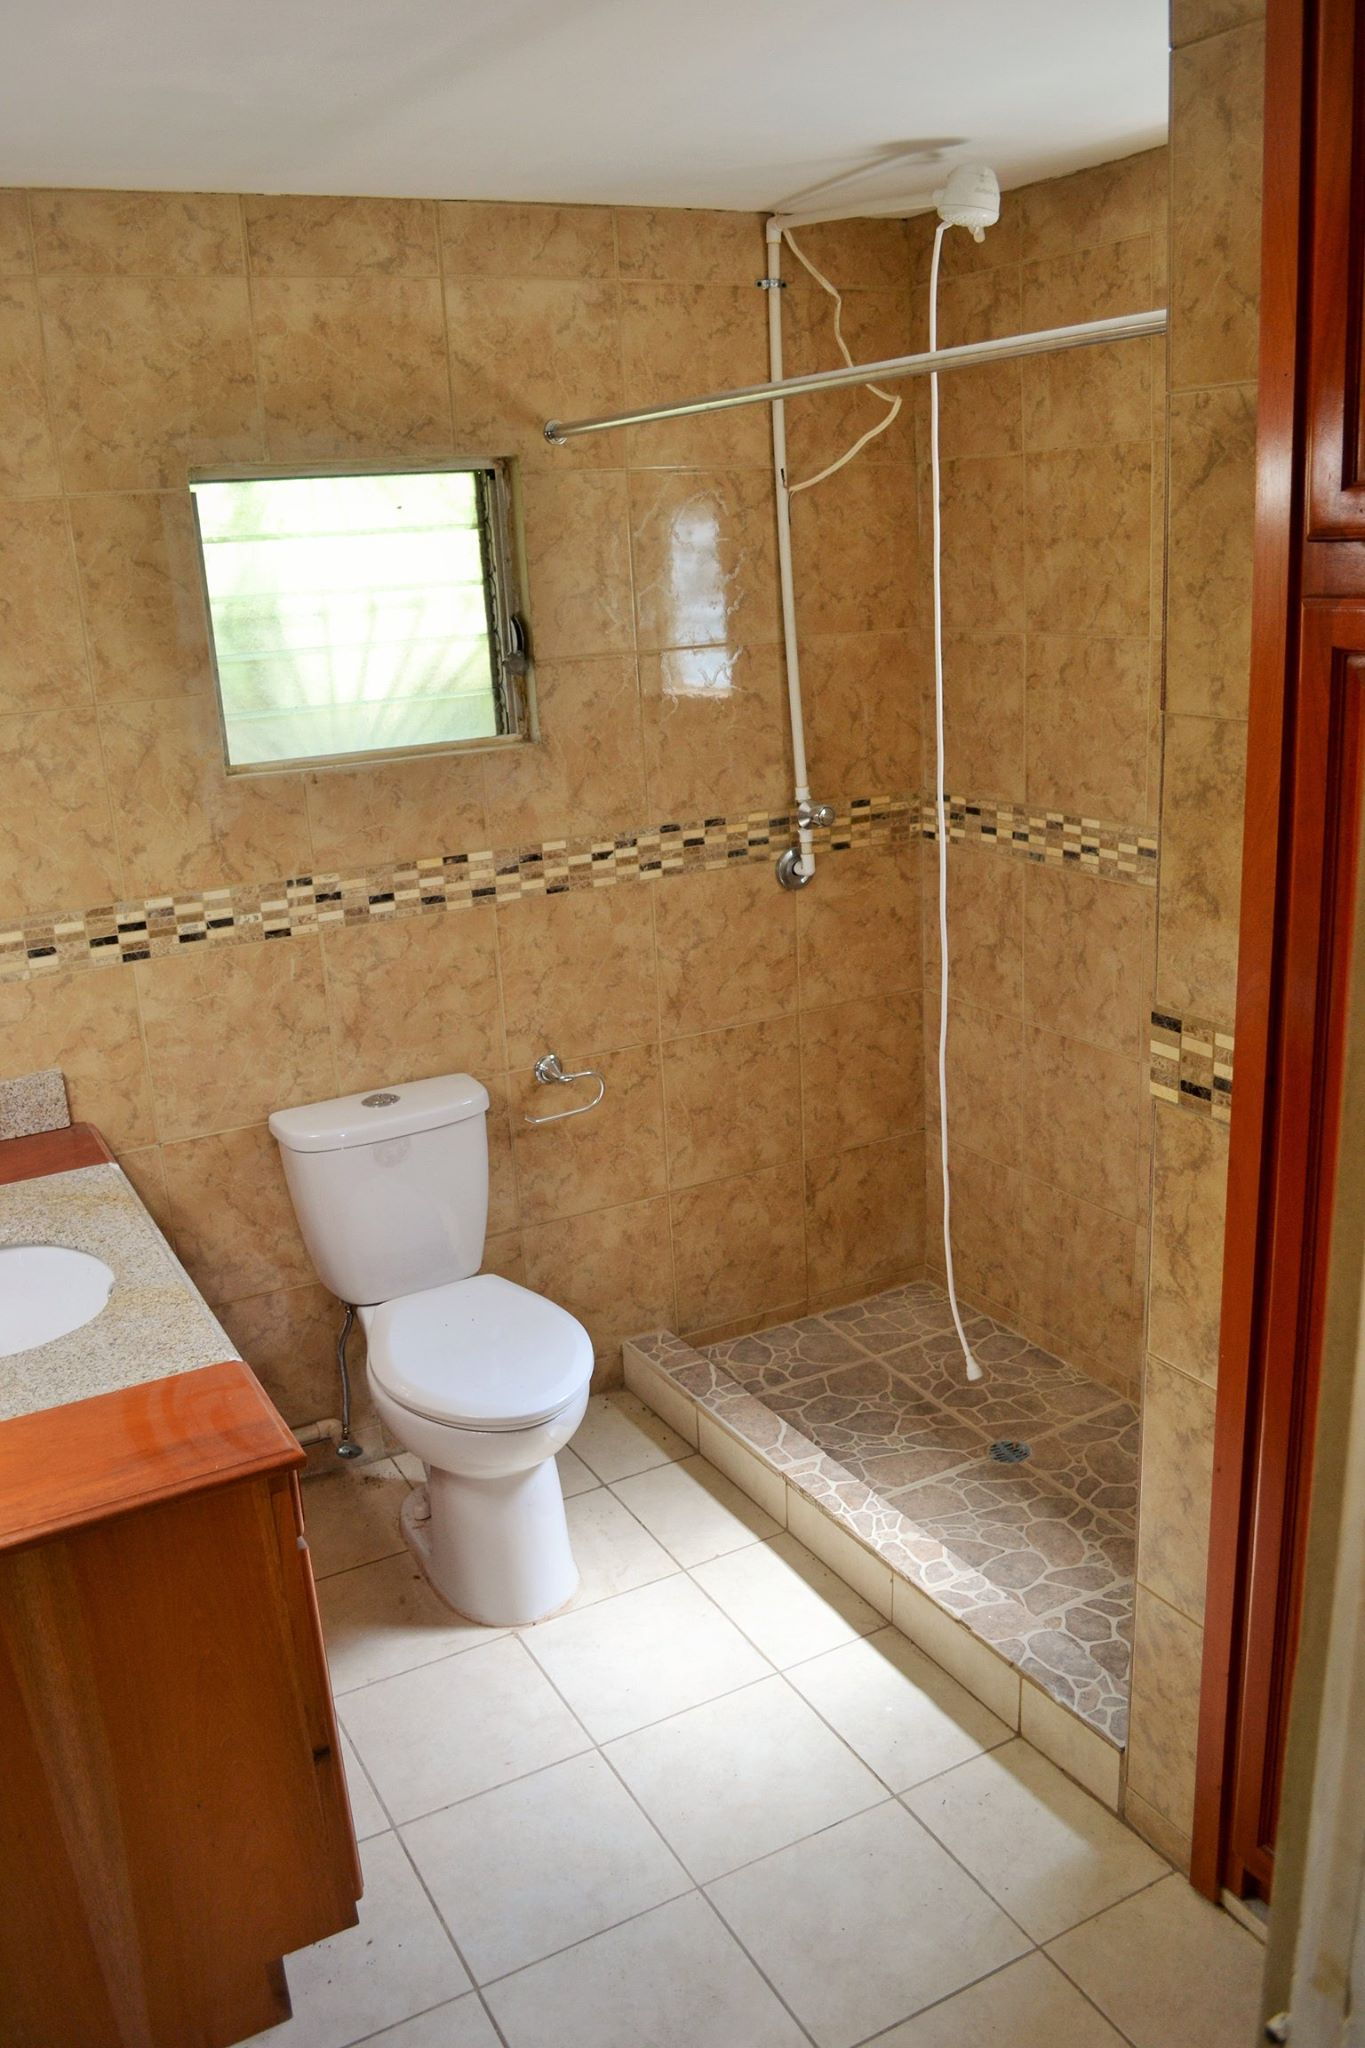 2 bed House, in the Cahal Pech area